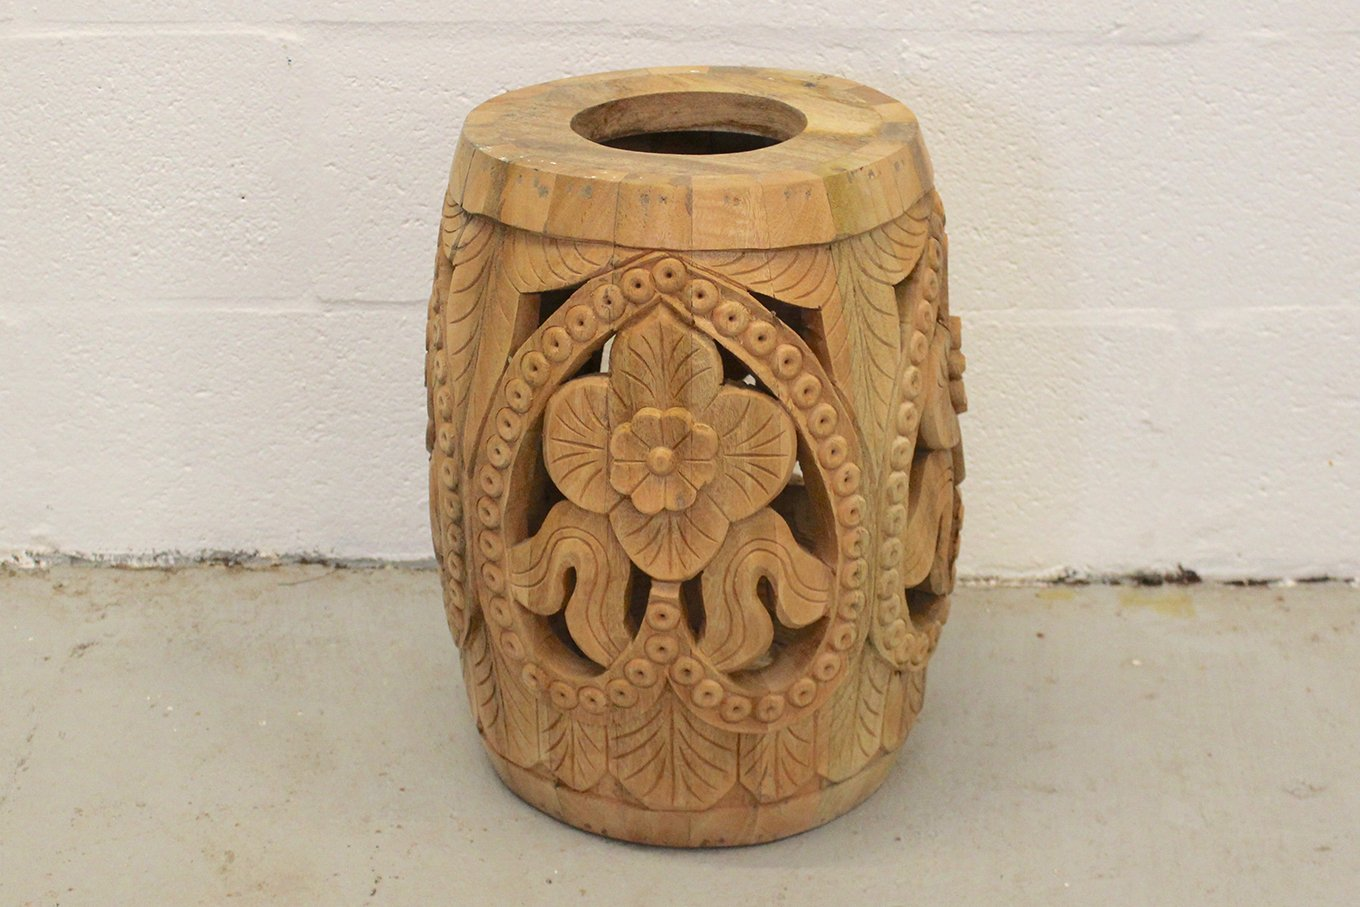 Carved wooden side table/ vase with floral theme